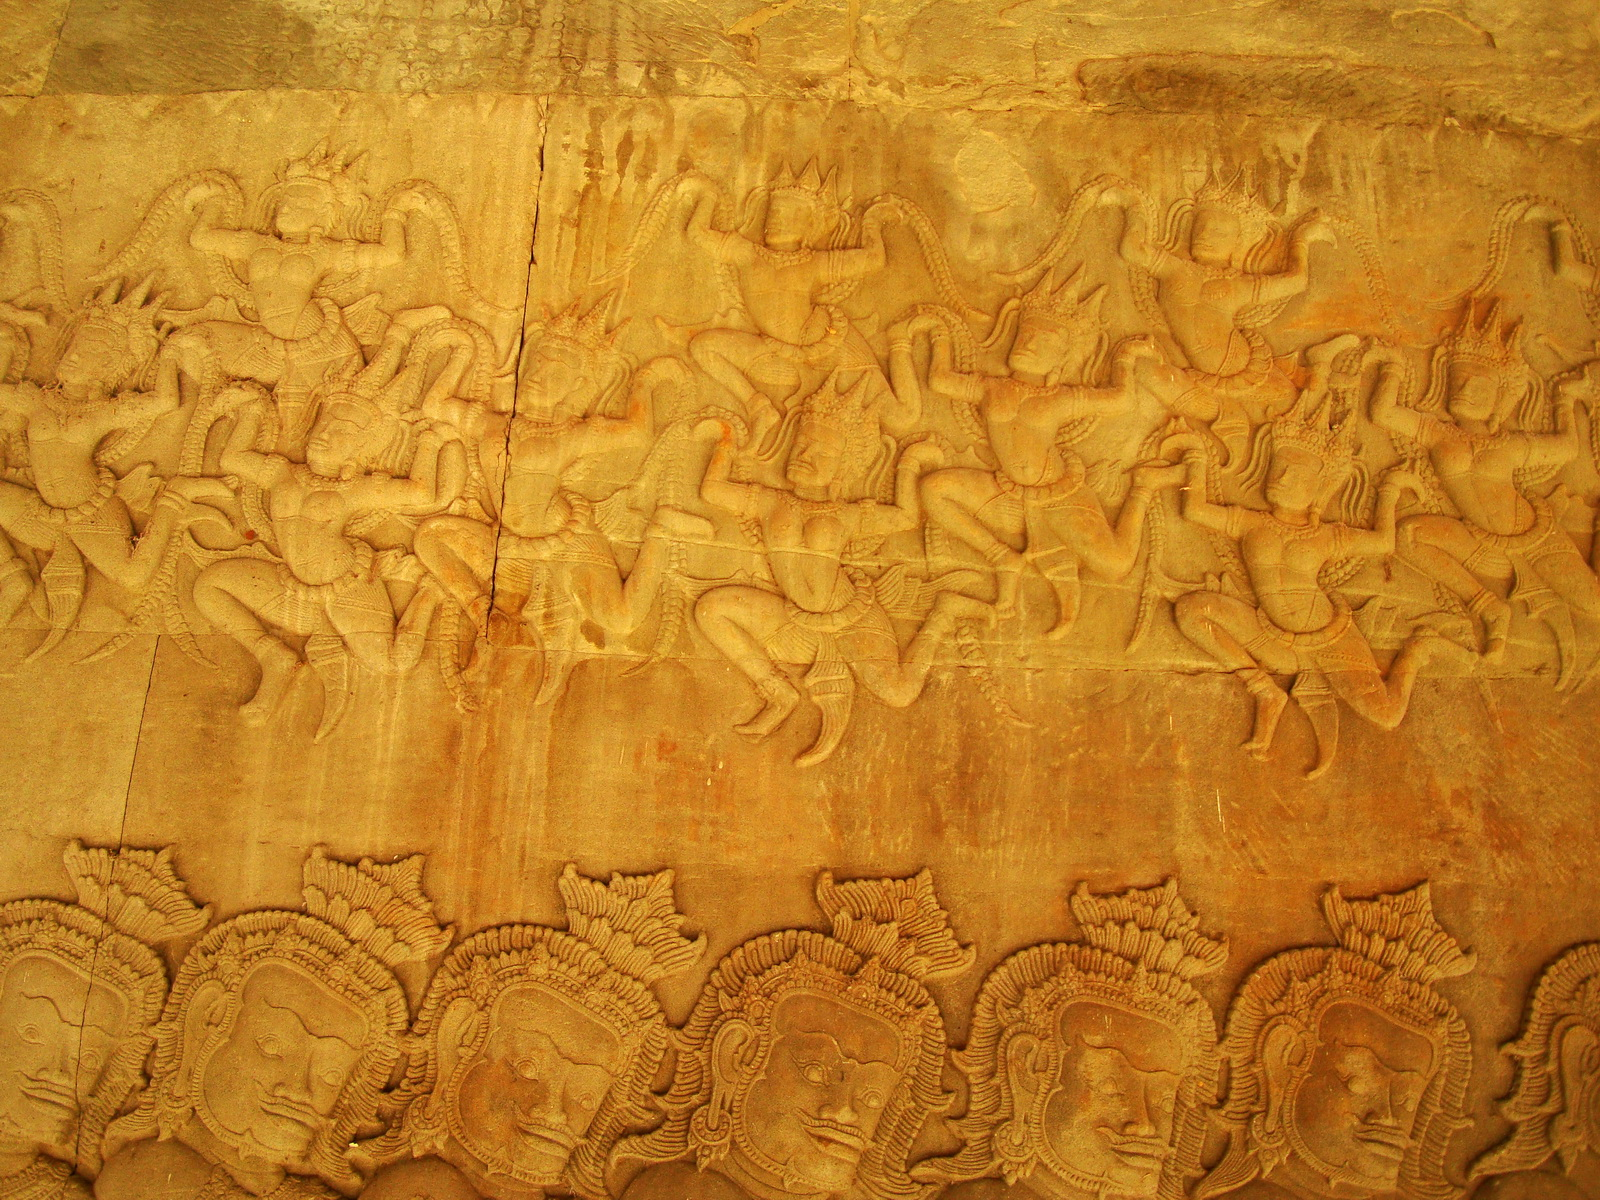 Churning of the sea of milk asuras tug of war with apsaras above 06